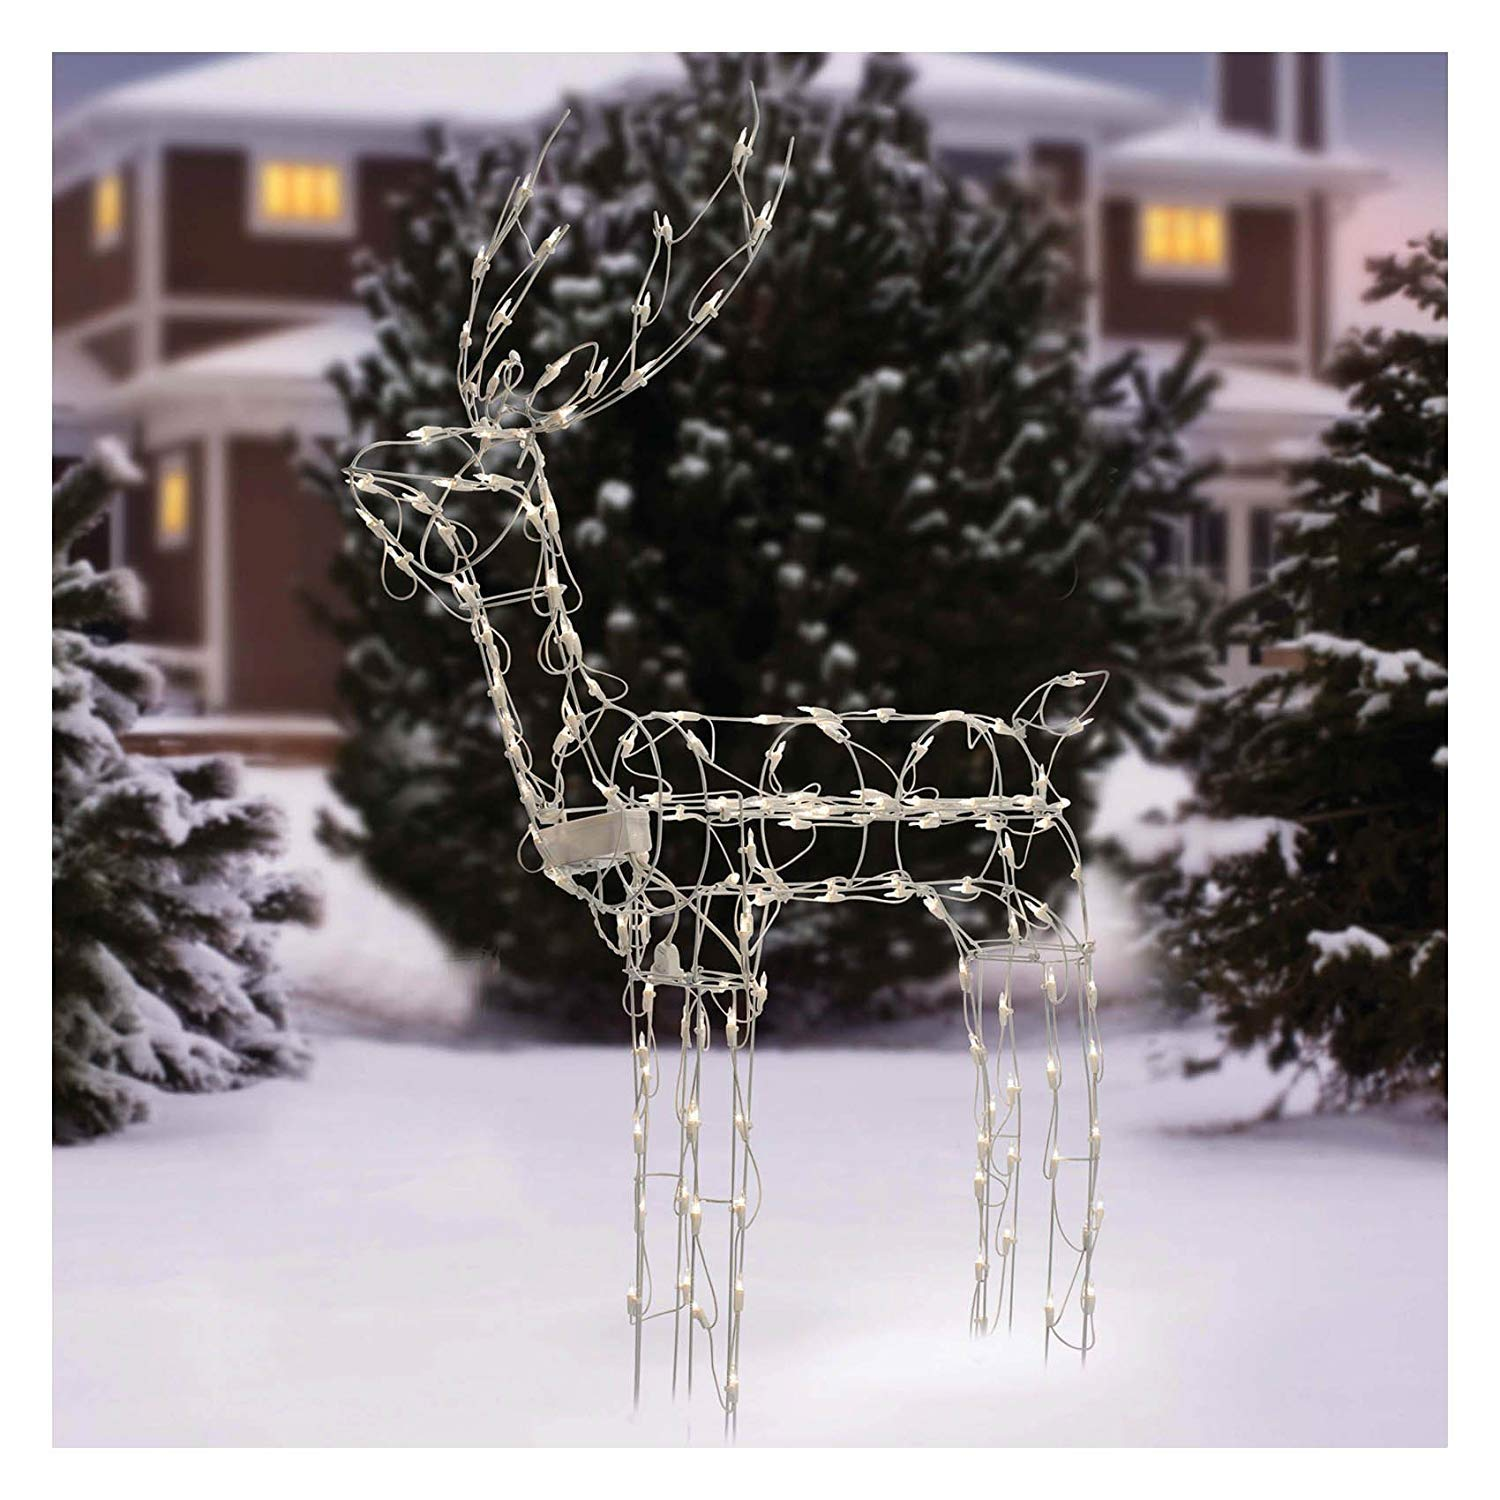 Animated 3 D Wire Standing Buck Reindeer Lighted And Wiring Diagrams For Incandescent String Light Moving Christmas Yard Decoration 48 Inches Tall Garden Outdoor